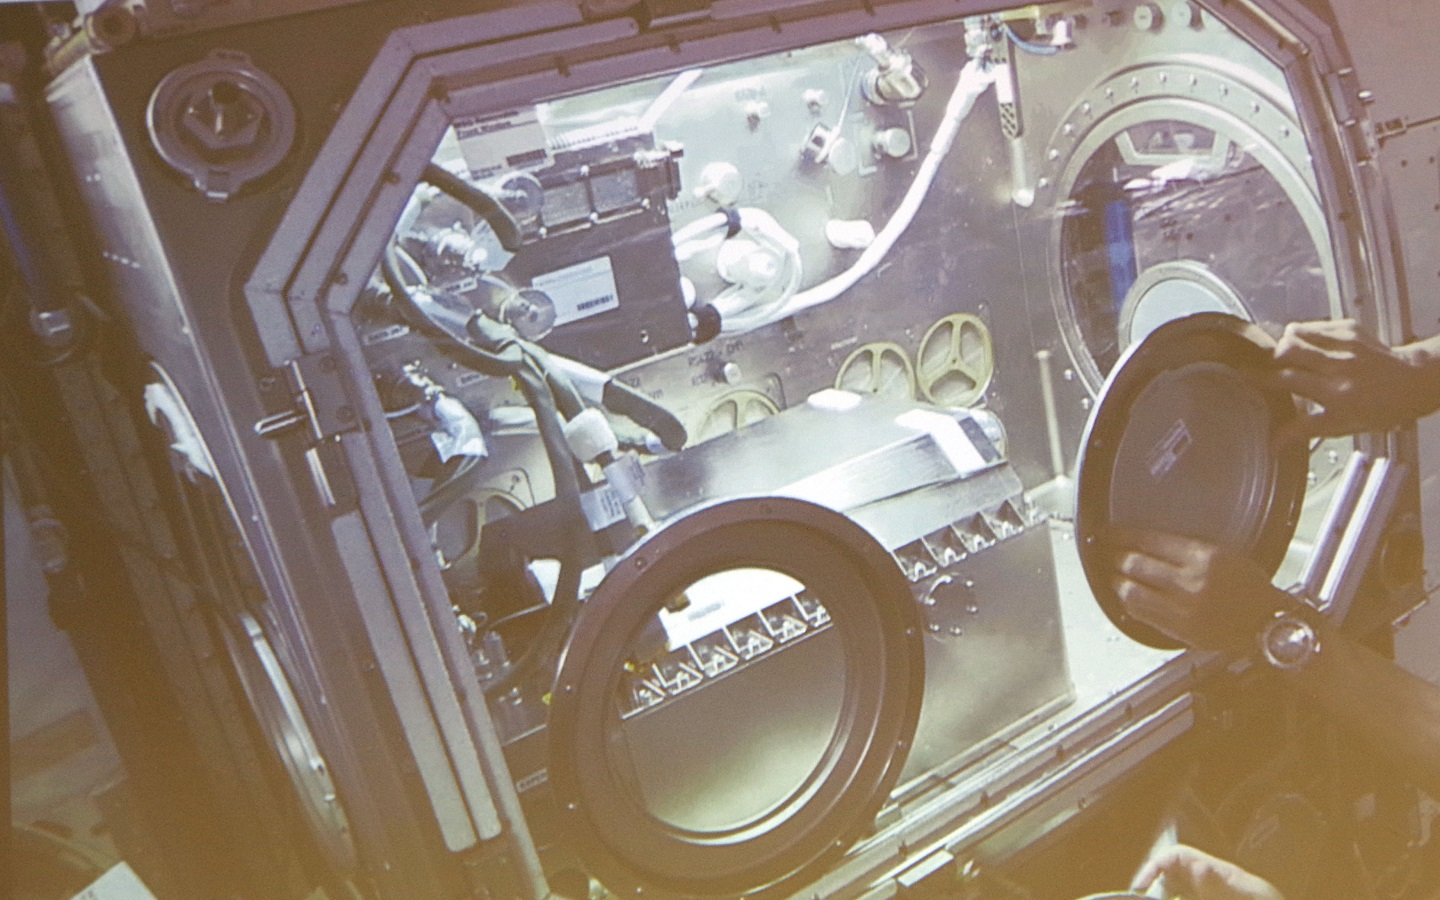 QinetiQ experiments used on International Space Station